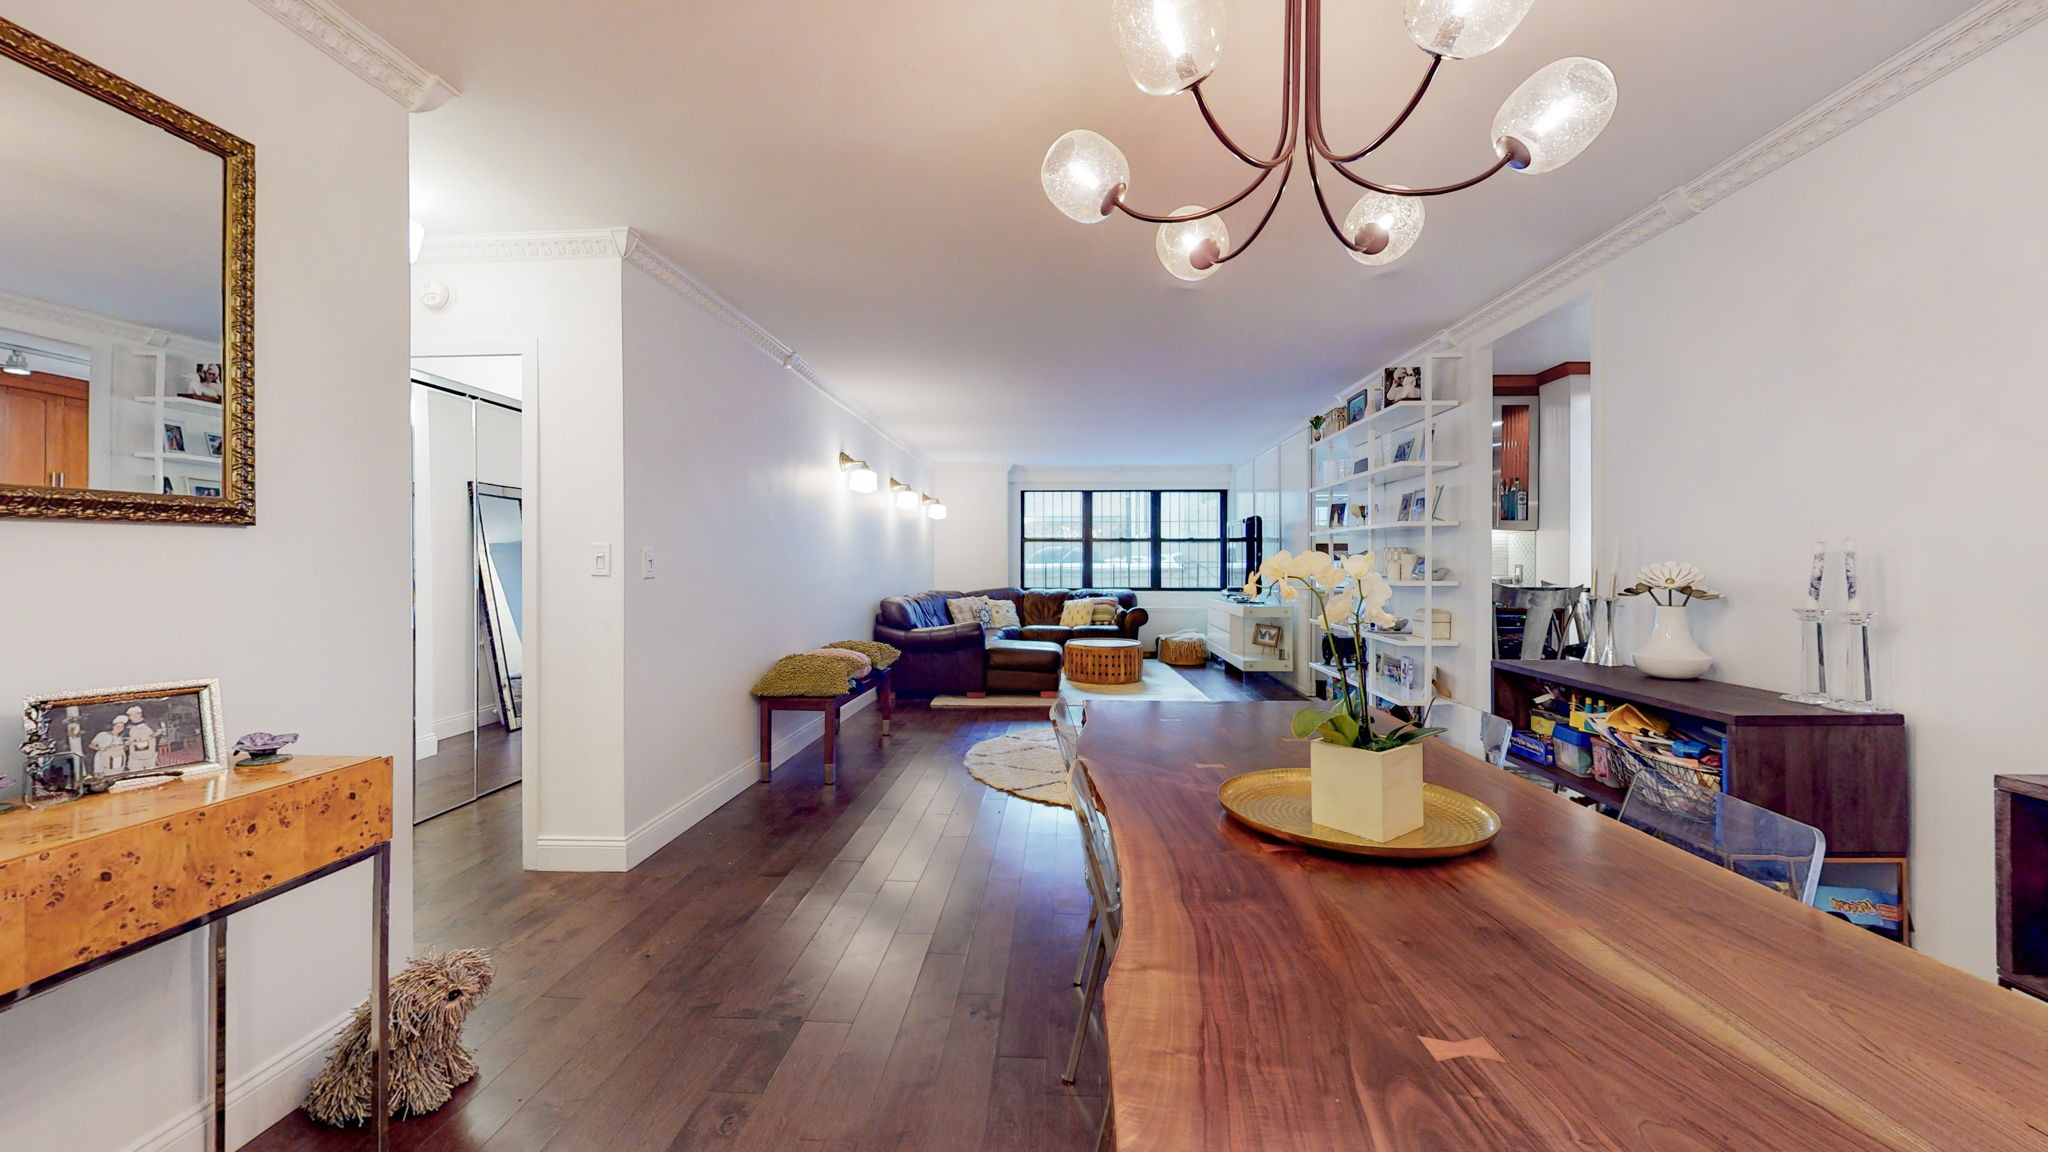 East 28th Street 201, New York, New York, New York, United States 10016, 2 Bedrooms Bedrooms, ,1 BathroomBathrooms,Co-op,IN-CONTRACT,The Chesapeake House,201,1149